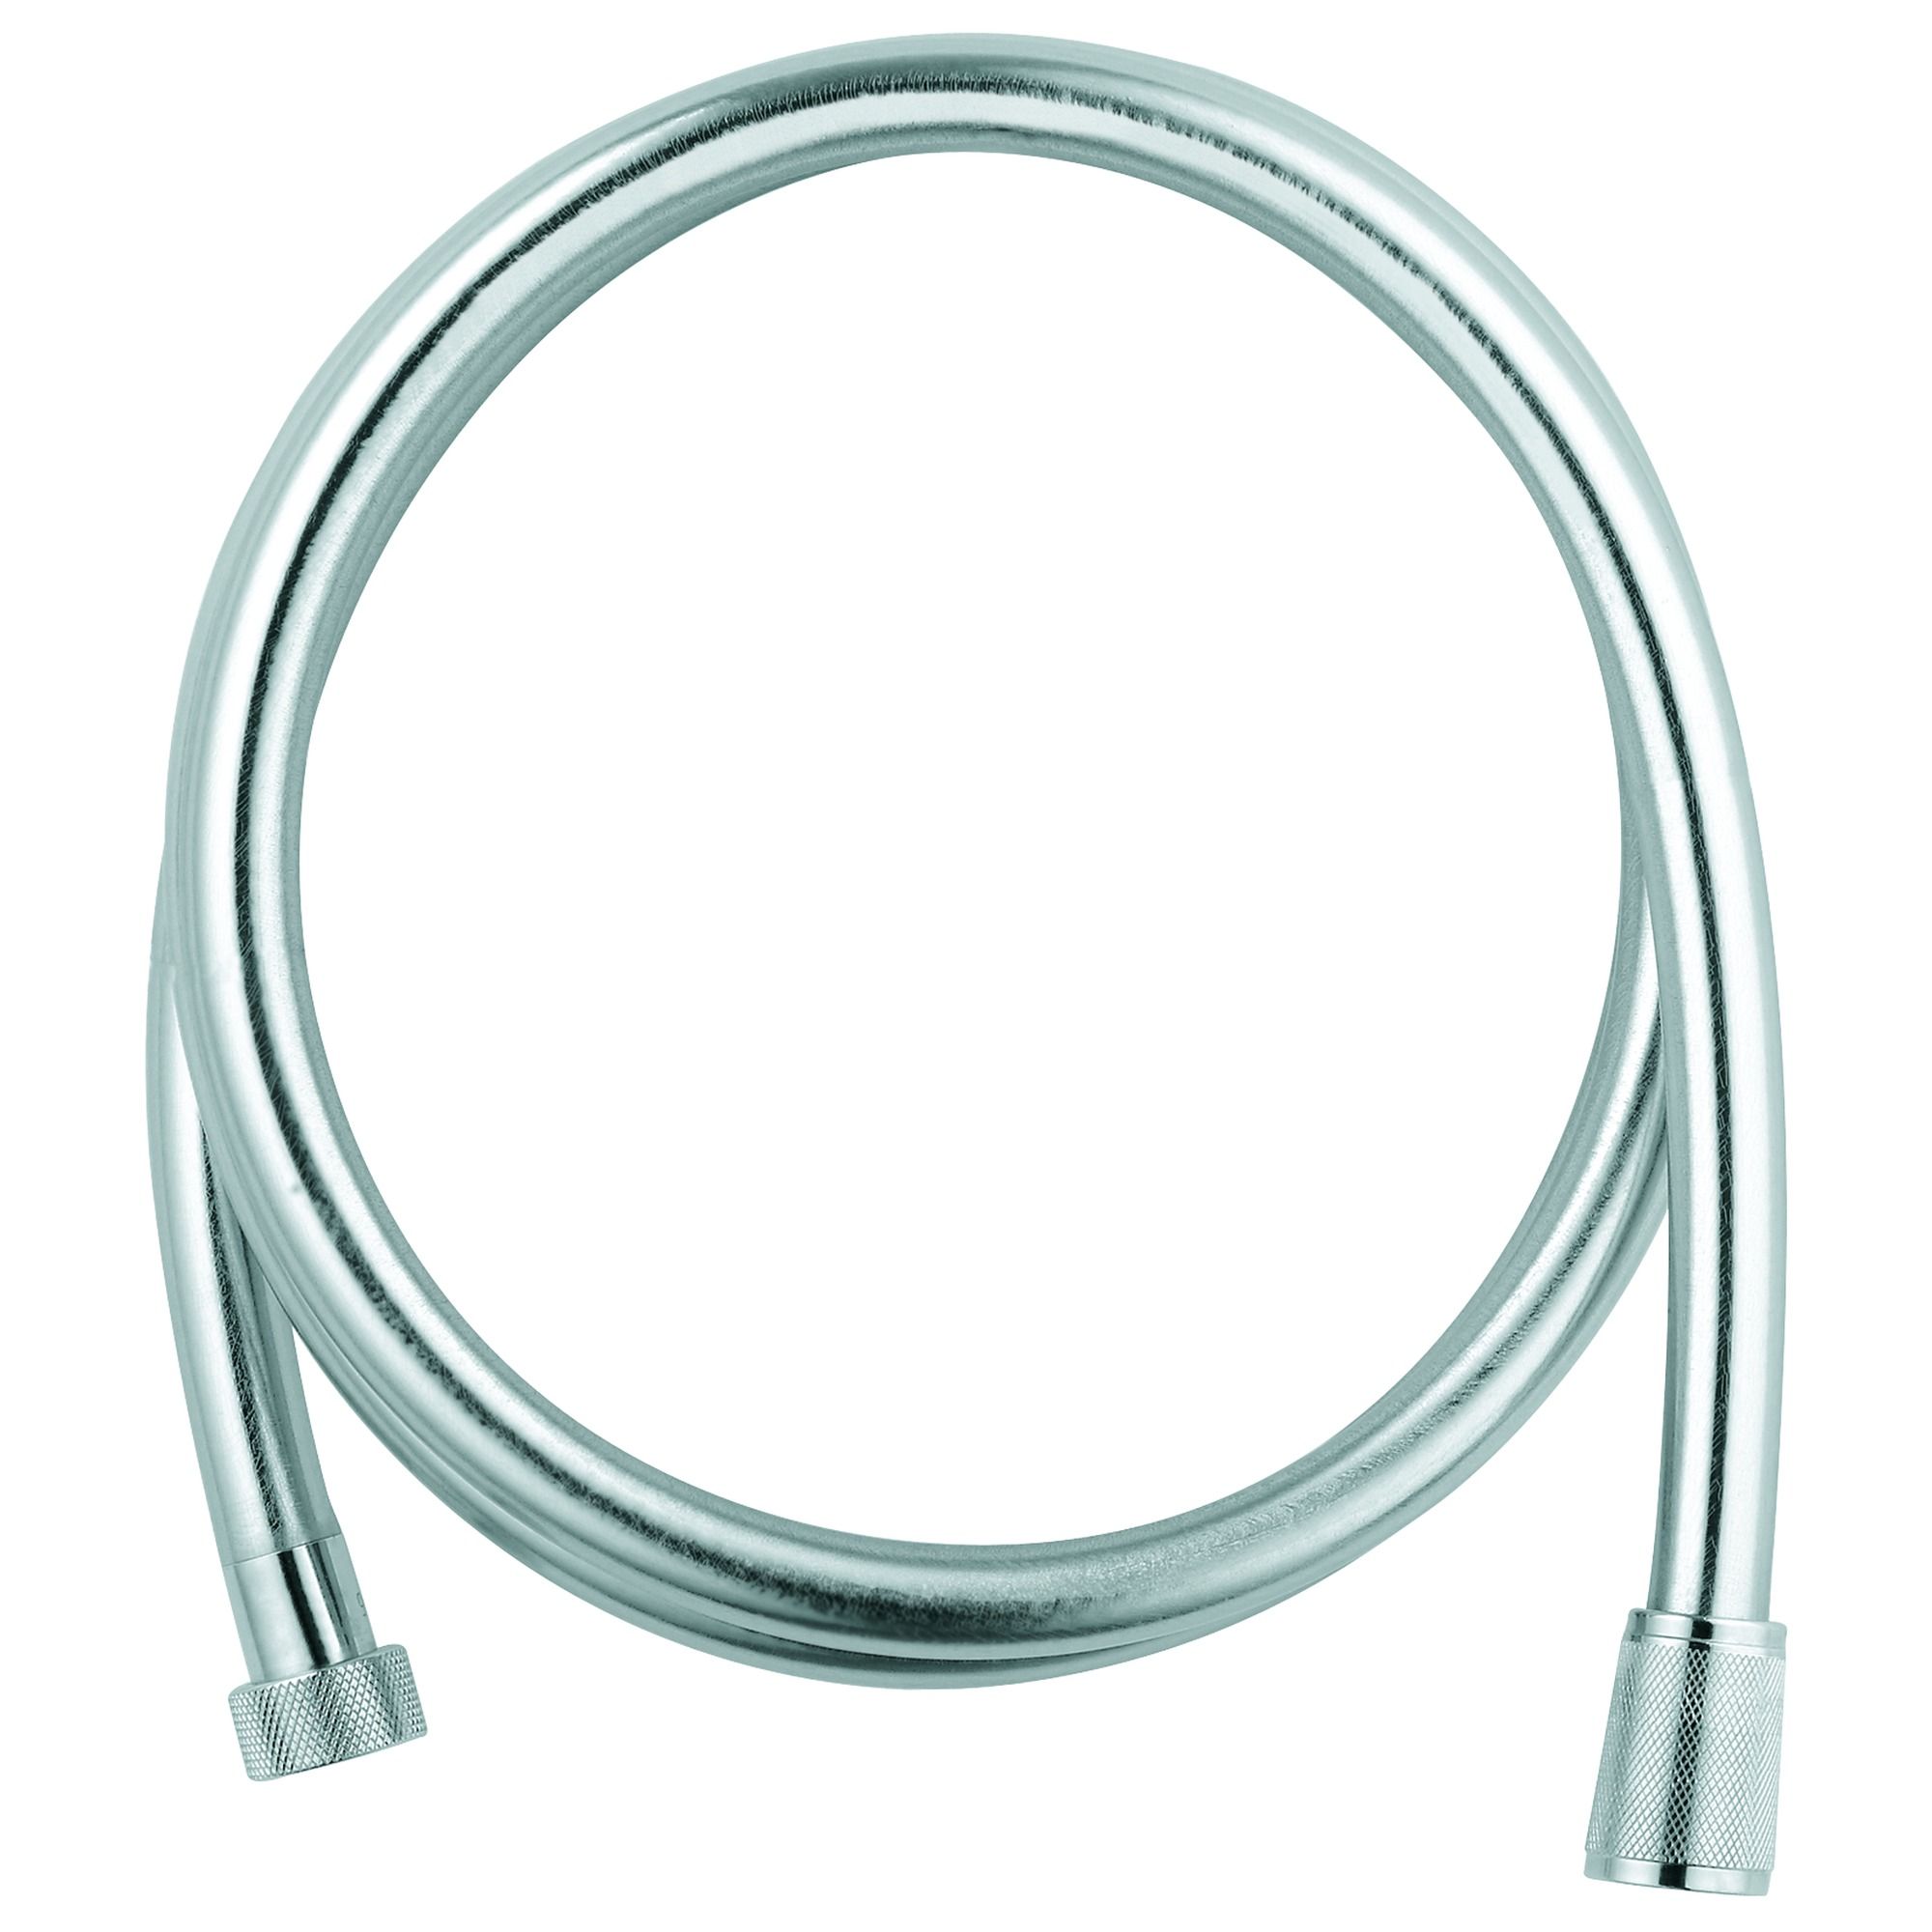 Grohe doucheslang silver 1-2x175cm zilver